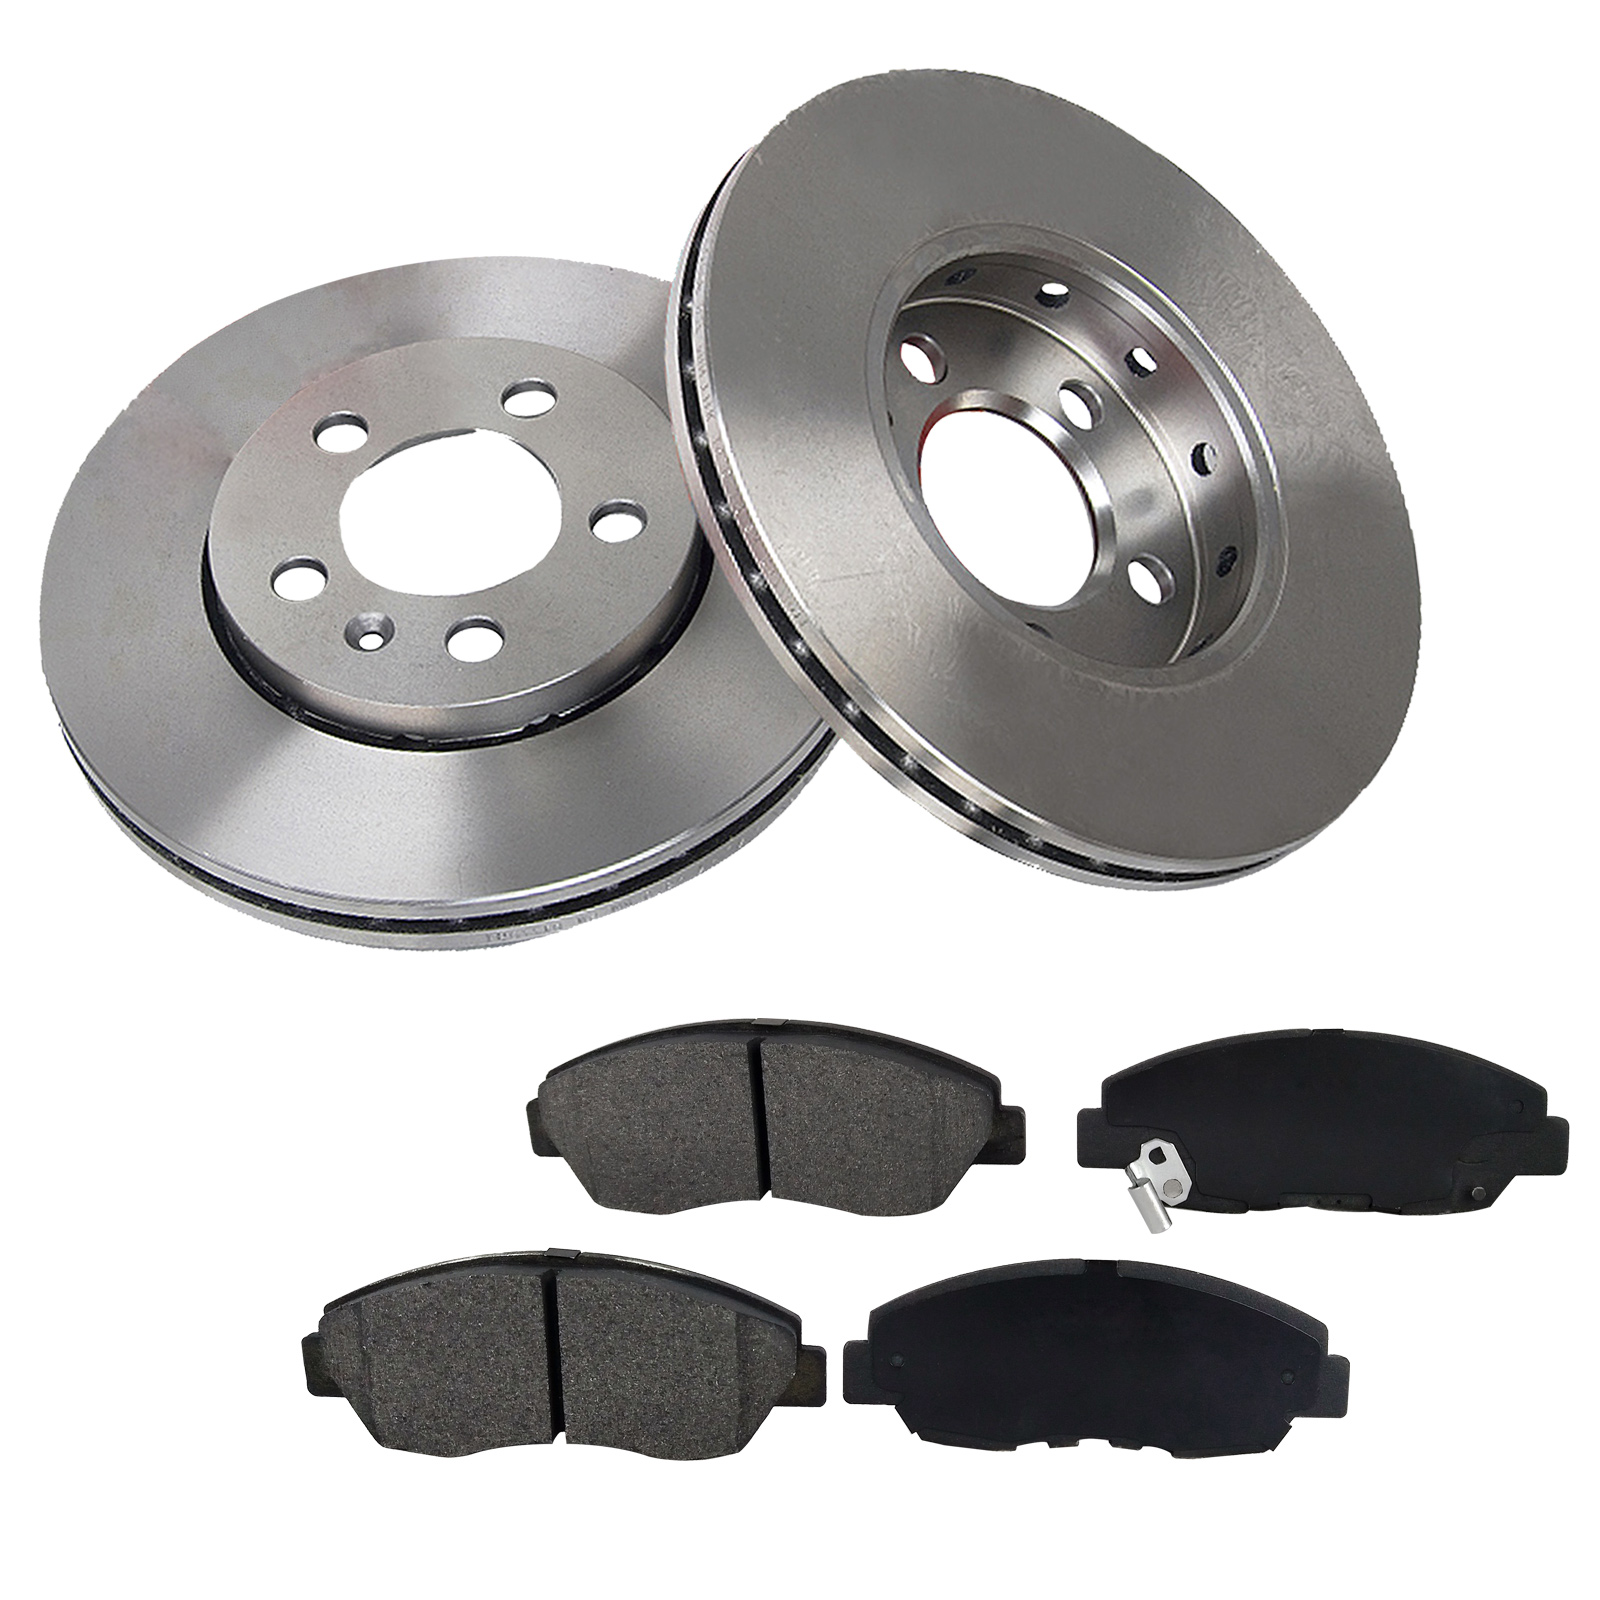 [2 Disc 4PADS]319mm Front Brake Rotor & Pads fit Nissan Murano Altima by Transglobe Automotive